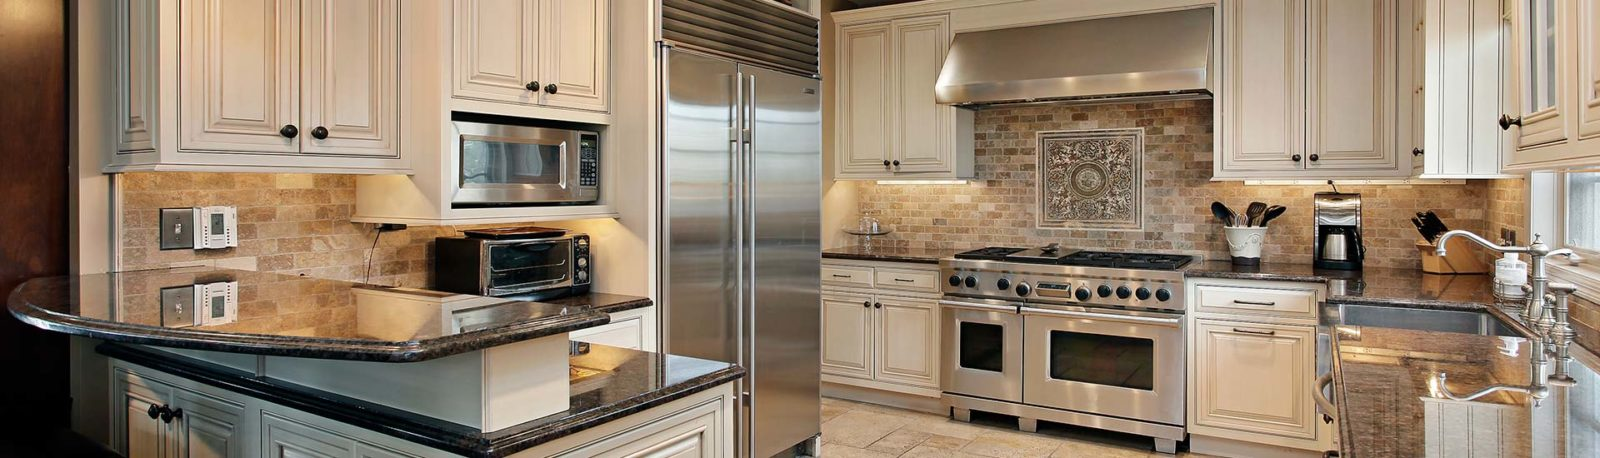 Kitchen Cabinets in Spring Valley NV, Las Vegas, Boulder City NV